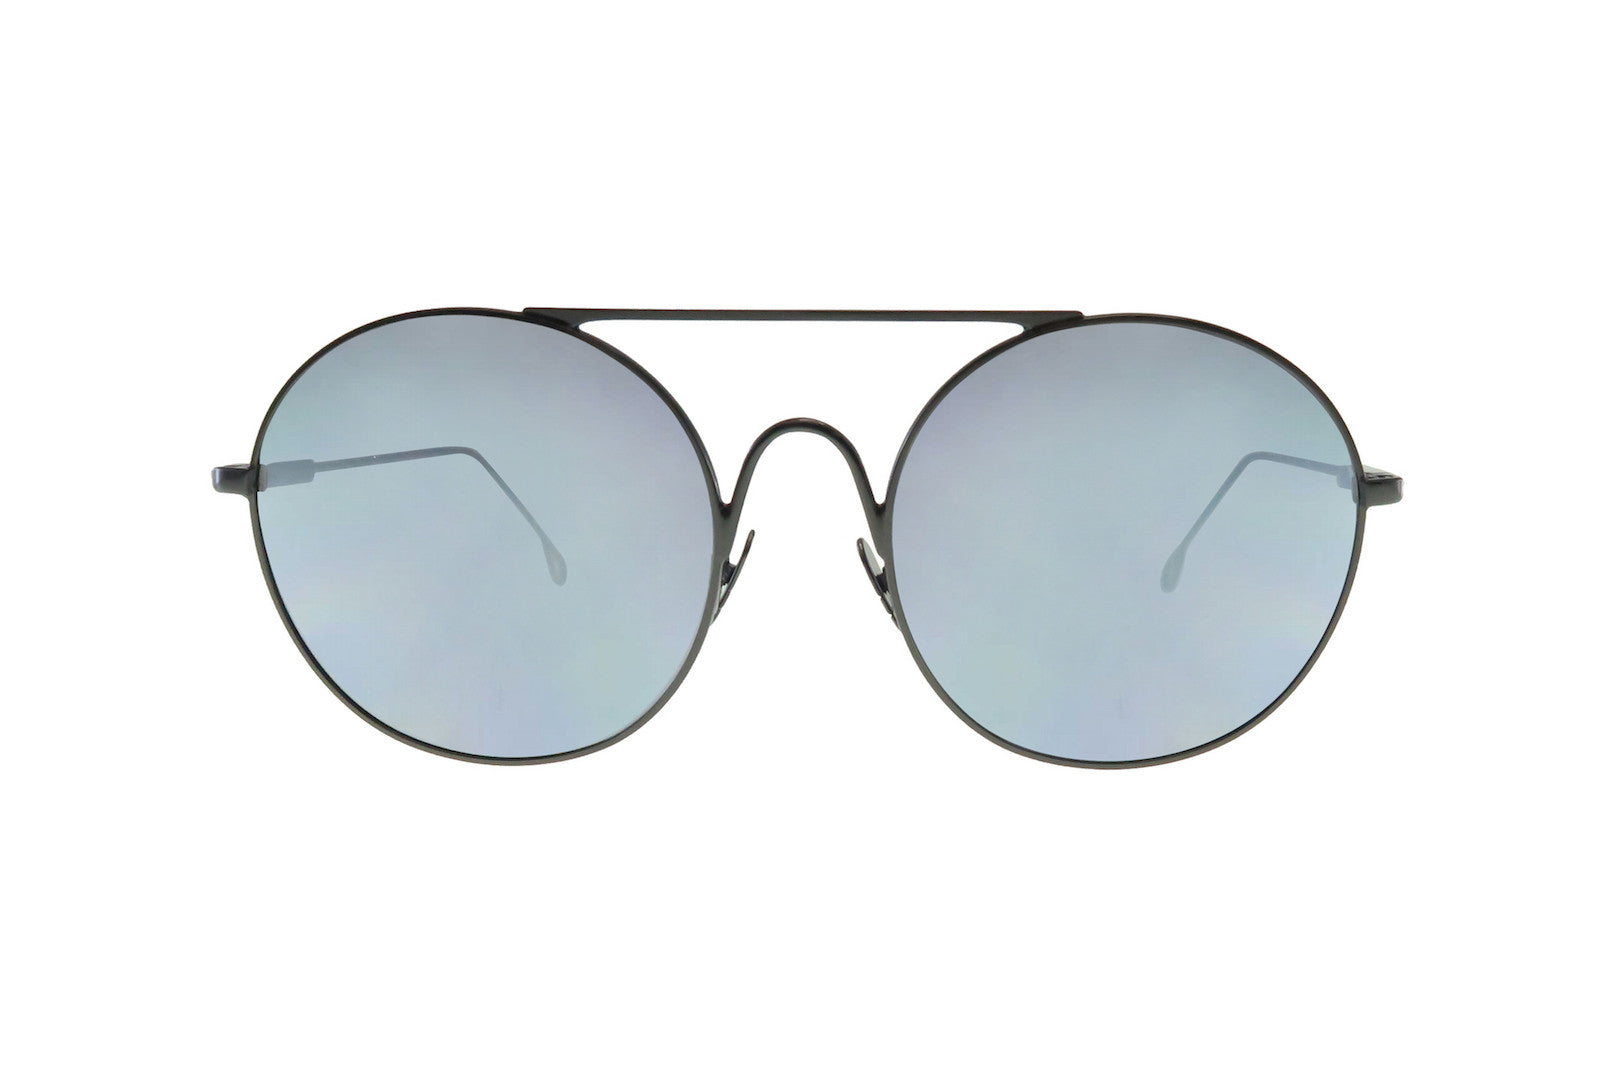 Vermont 997 - Peppertint - Designer sunglasses